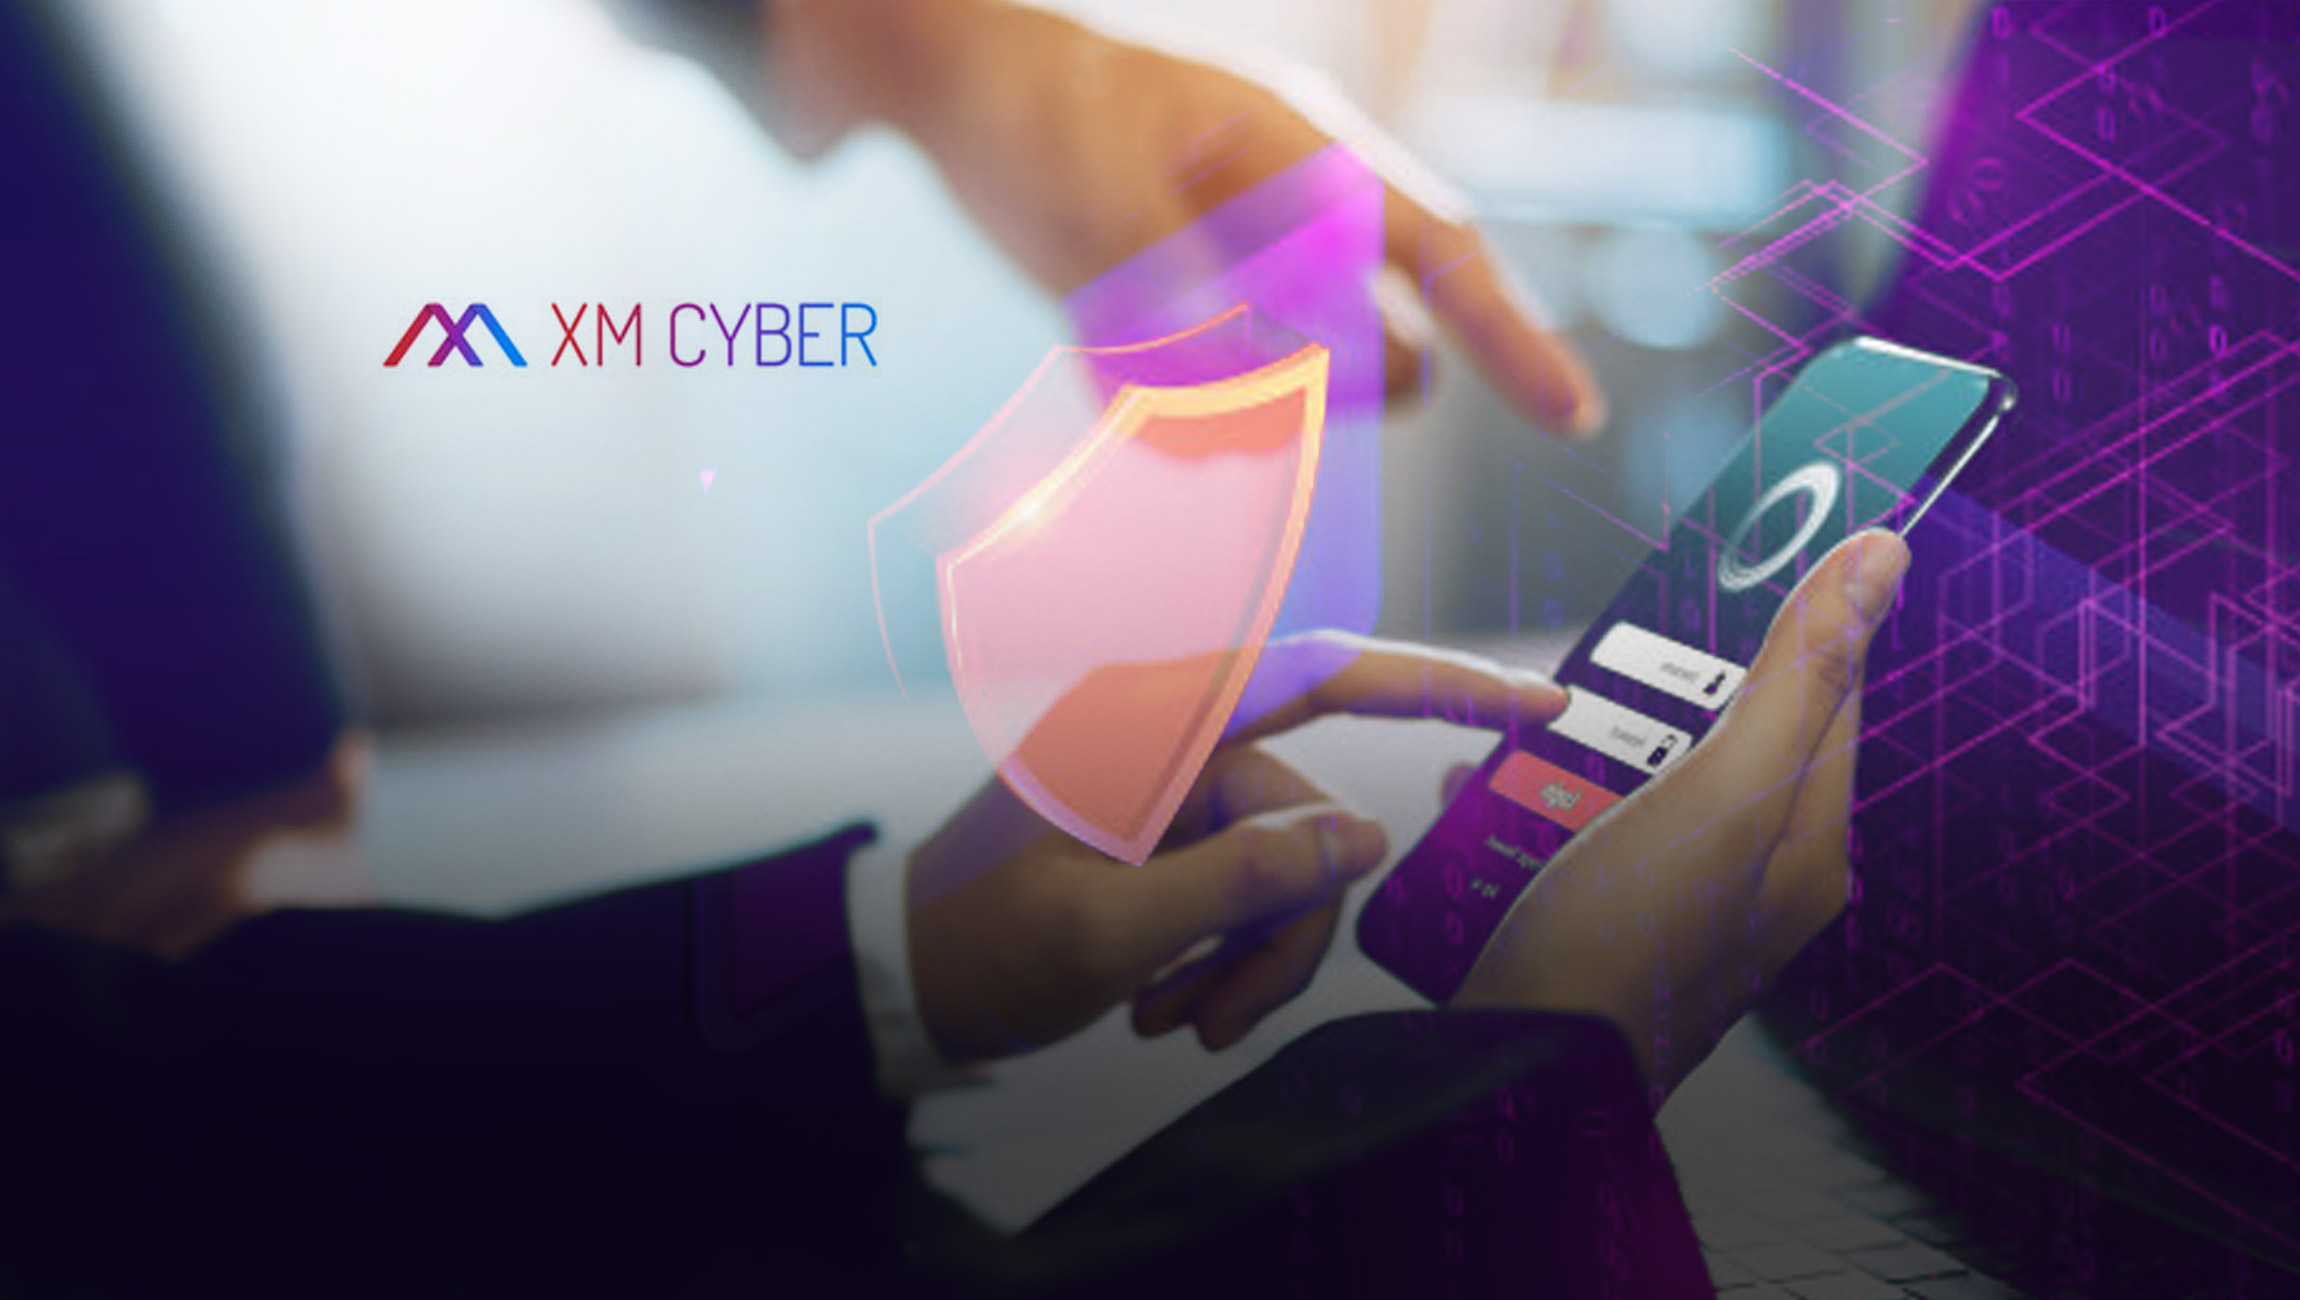 XM Cyber and Cyber Guards Work Together to Deliver Unparalleled Cyber Security Assessments, Risk Management and Incident Response